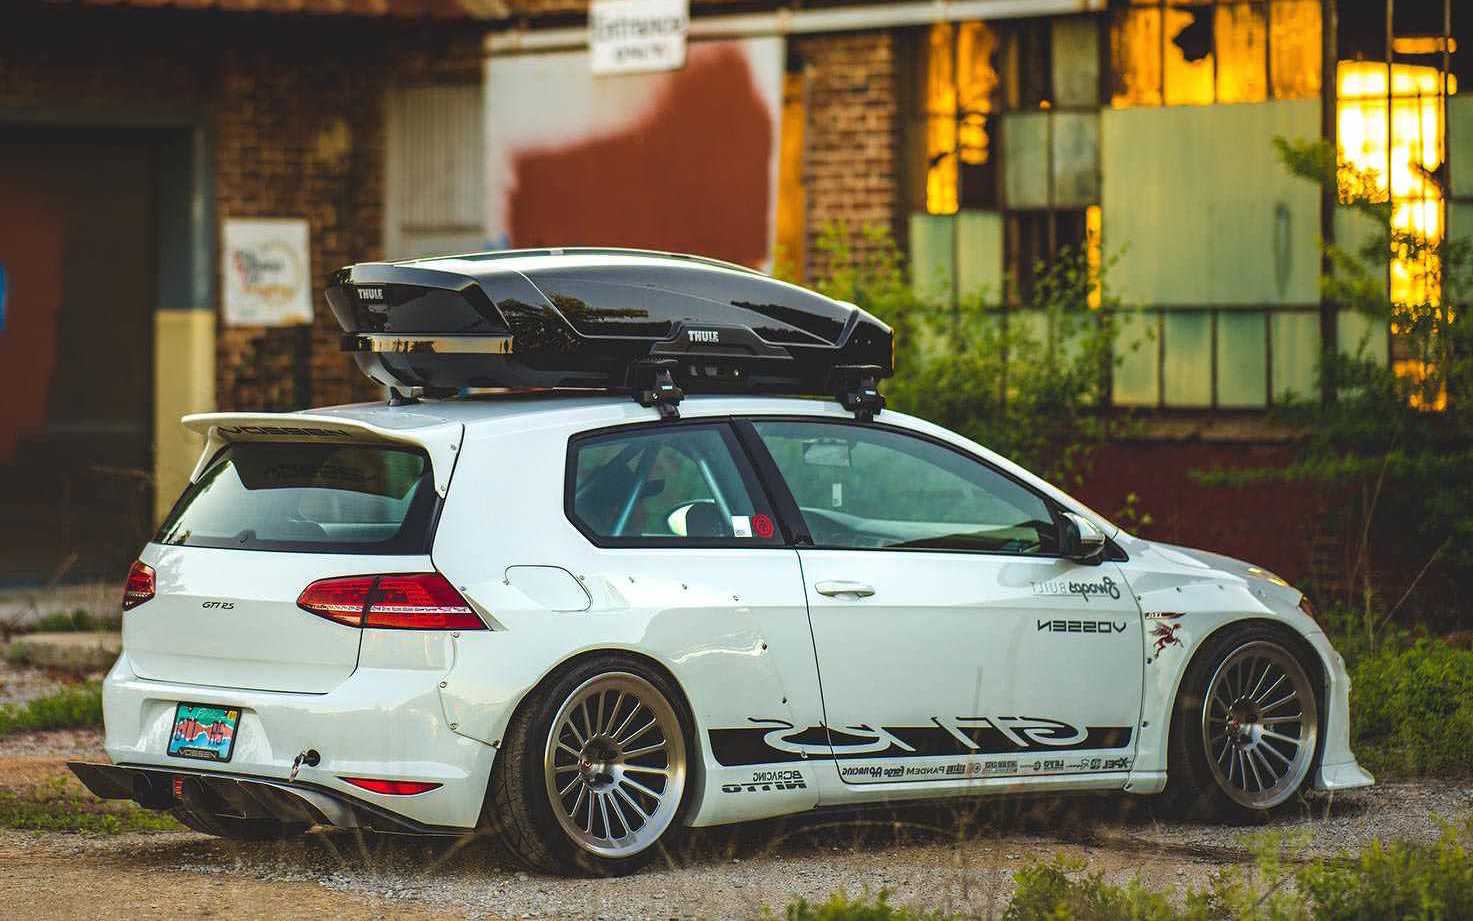 2018 Golf R Usa >> Volkswagen unveils 5 creative concepts for SOWO event in USA | PerformanceDrive